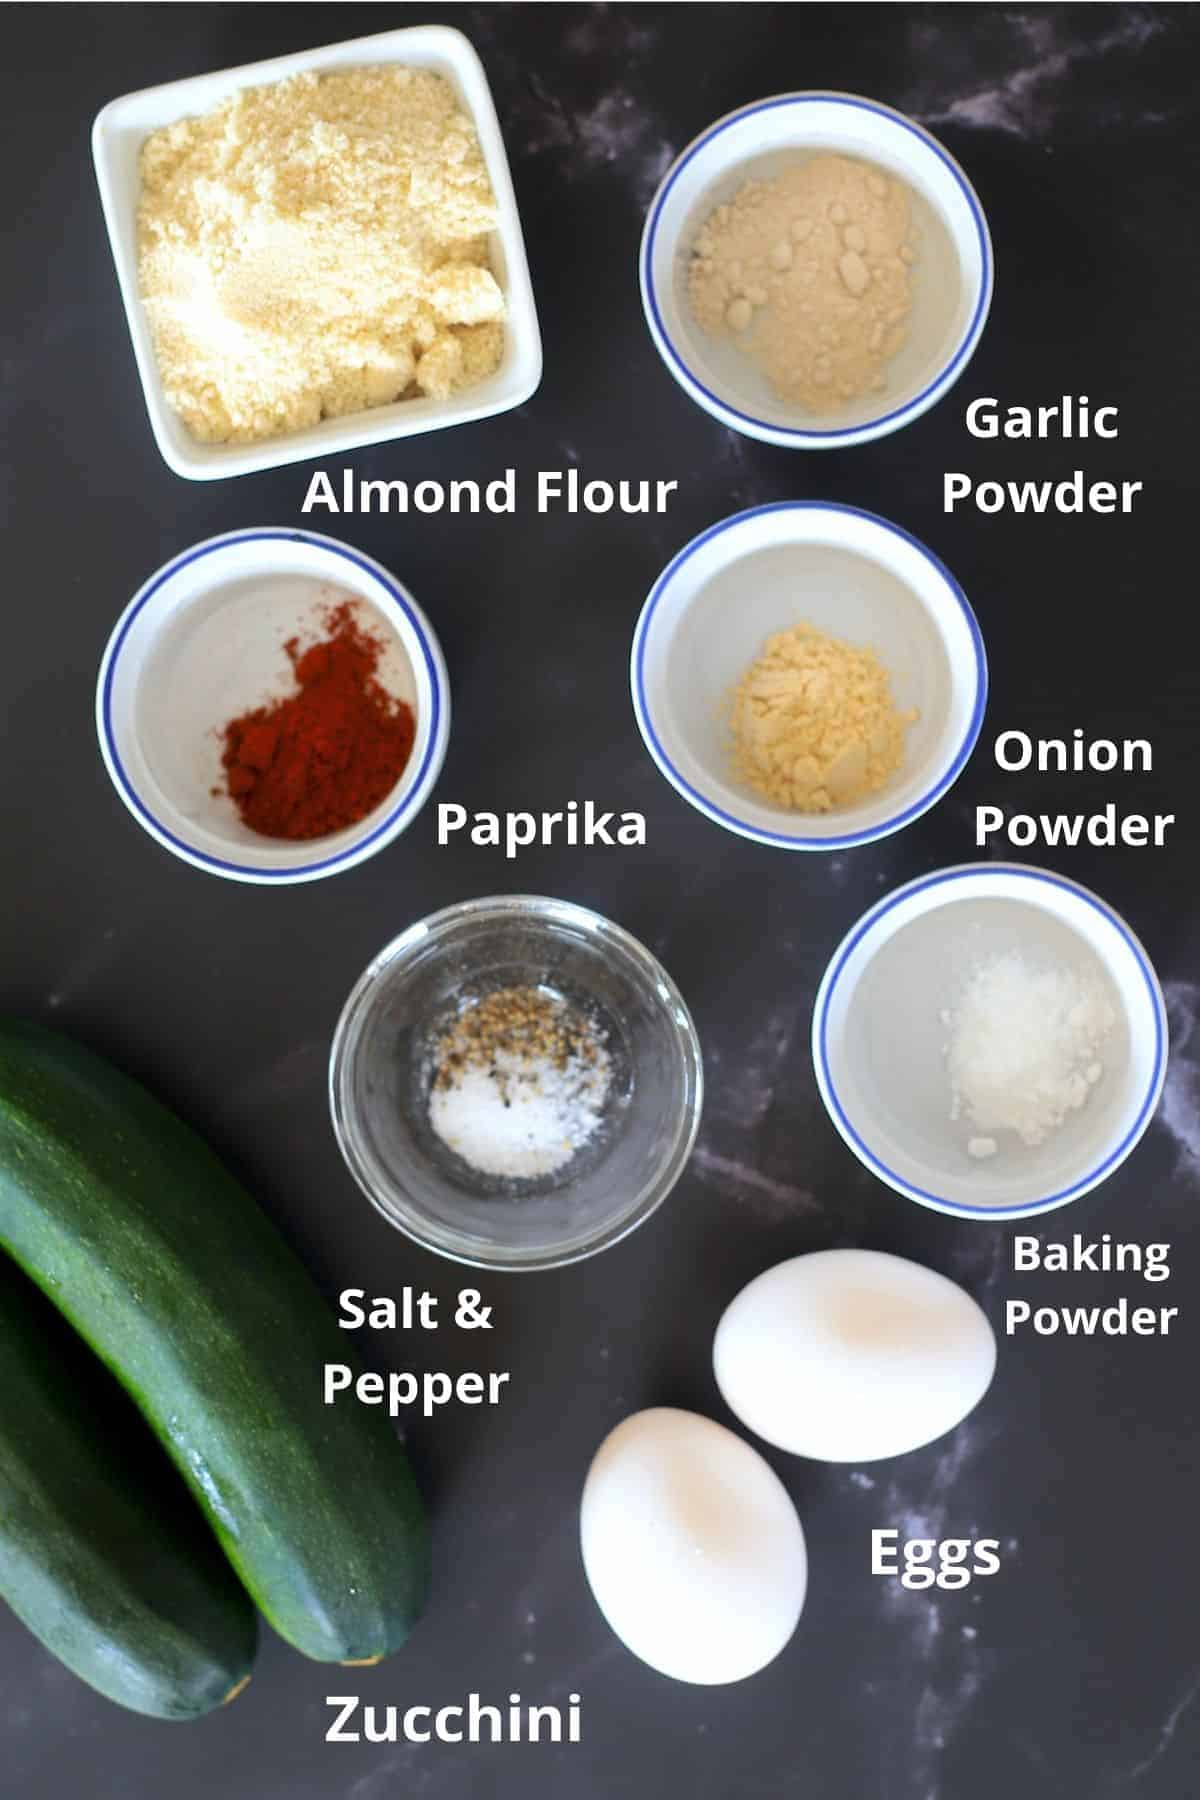 ingredients for the low carb zucchini fritters